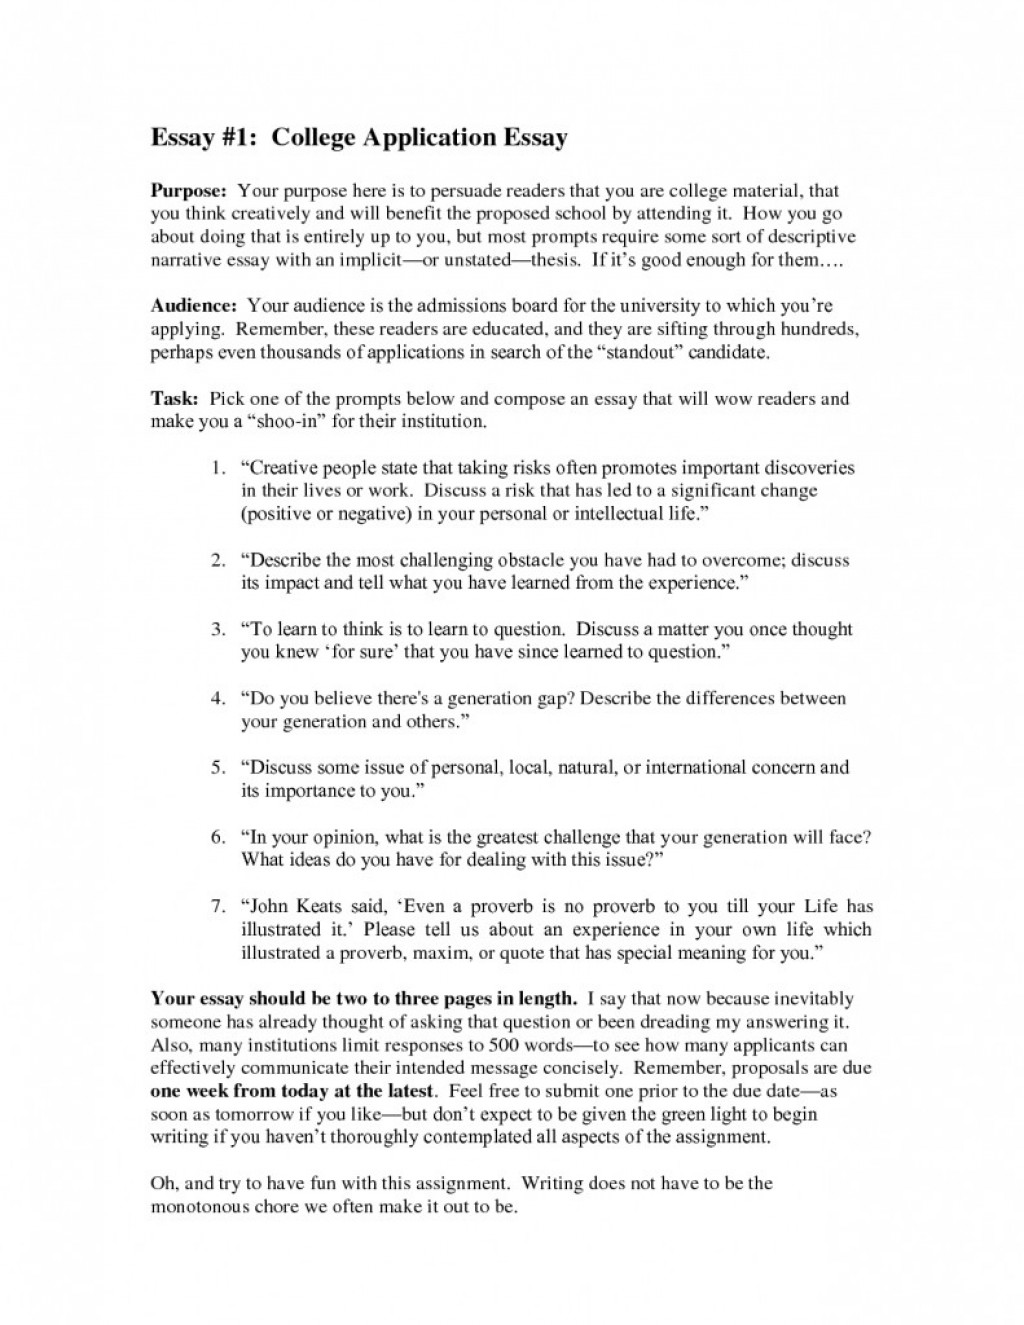 014 Essay Example Prompt Examples College Application Incredible Writing For 4th Grade Prompts Expository High School Large